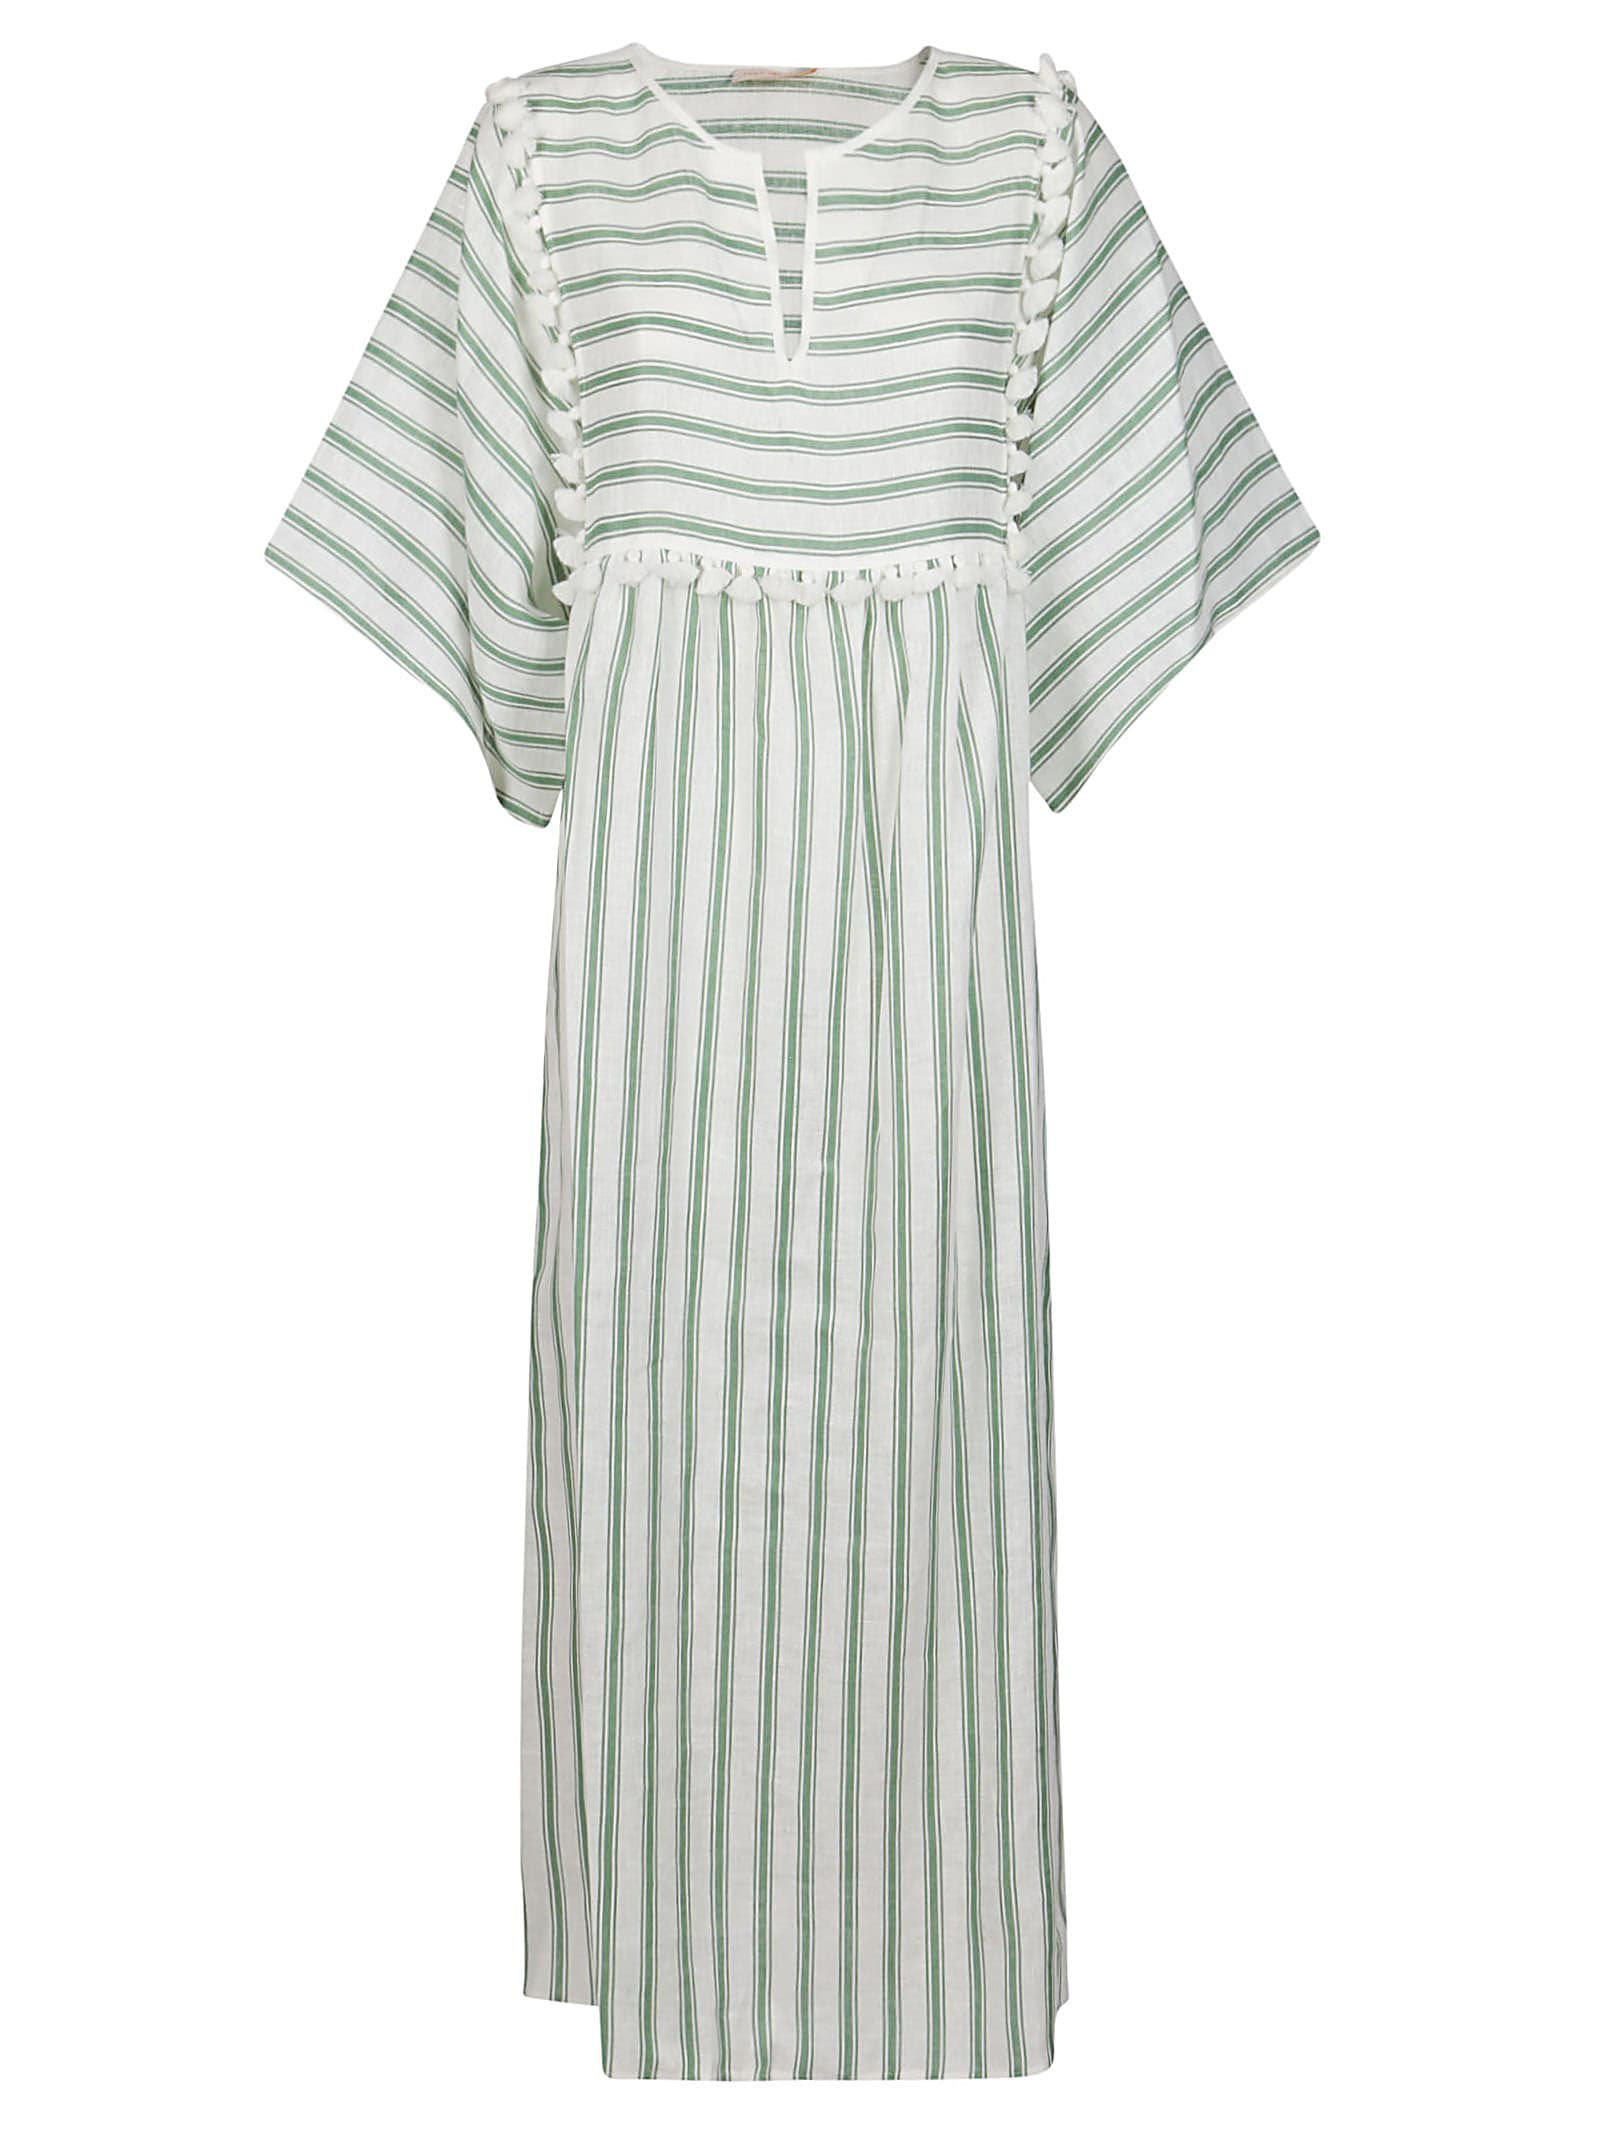 White And Green Linen Dress